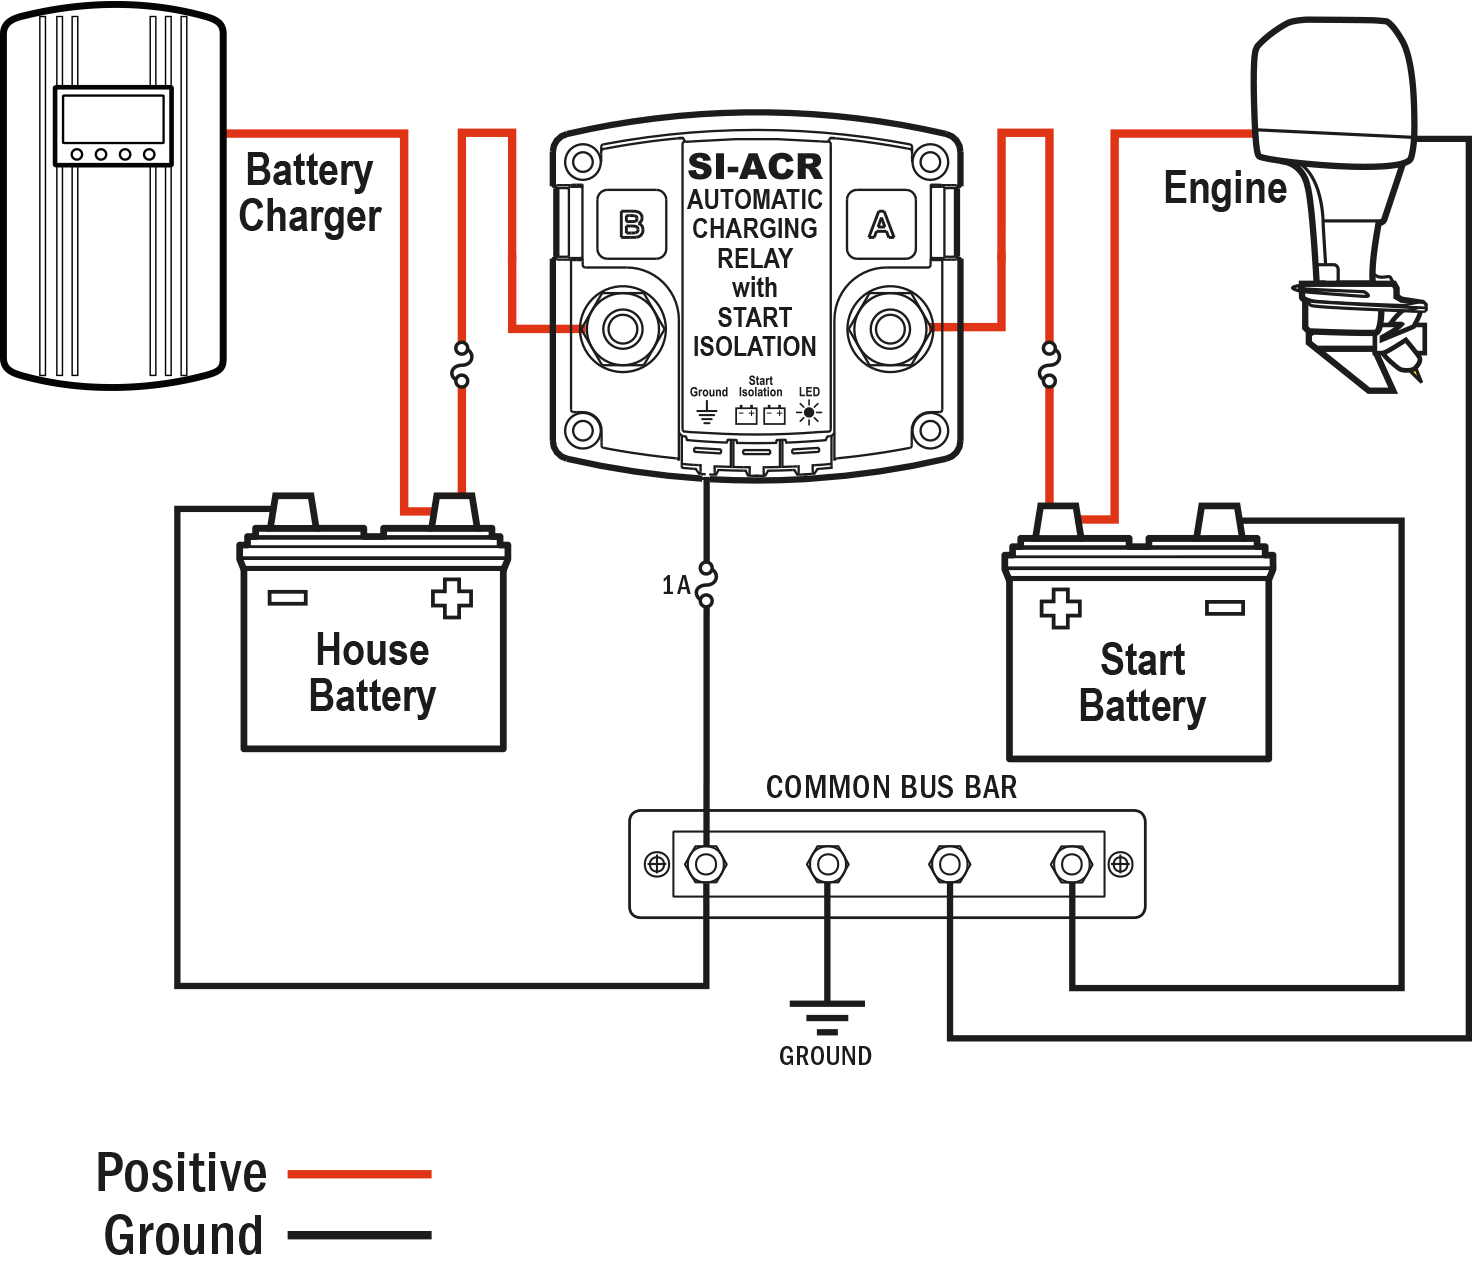 12 Volt Dc Switch Wiring Diagram Will Be A Thing Toggle Switches Si Acr Automatic Charging Relay 24v 120a Blue Ignition